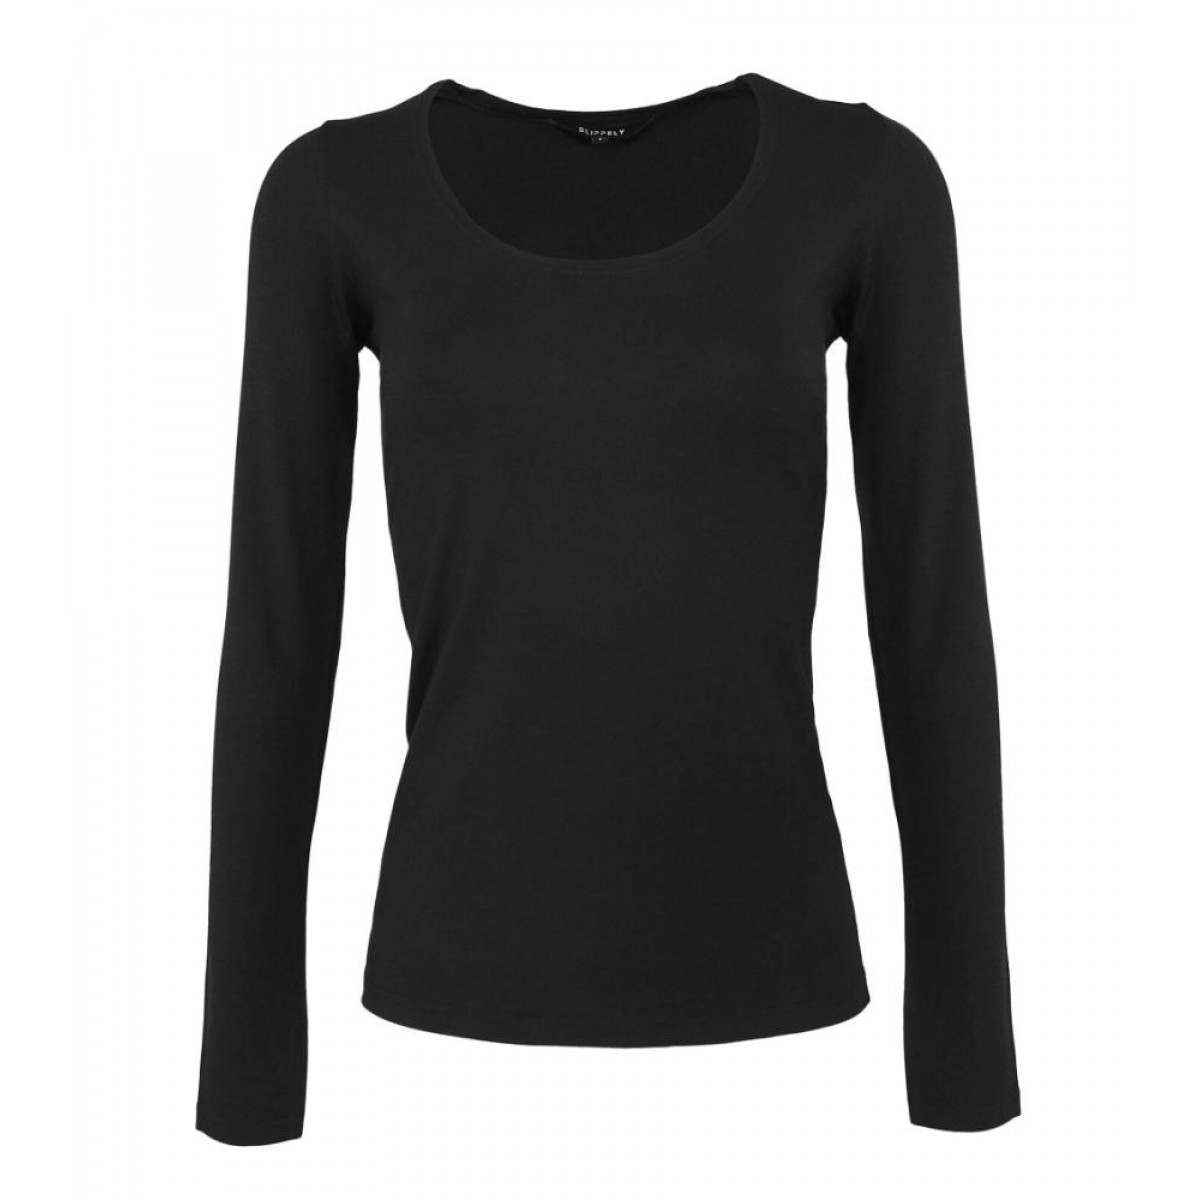 T-shirt longsleeve viscose black